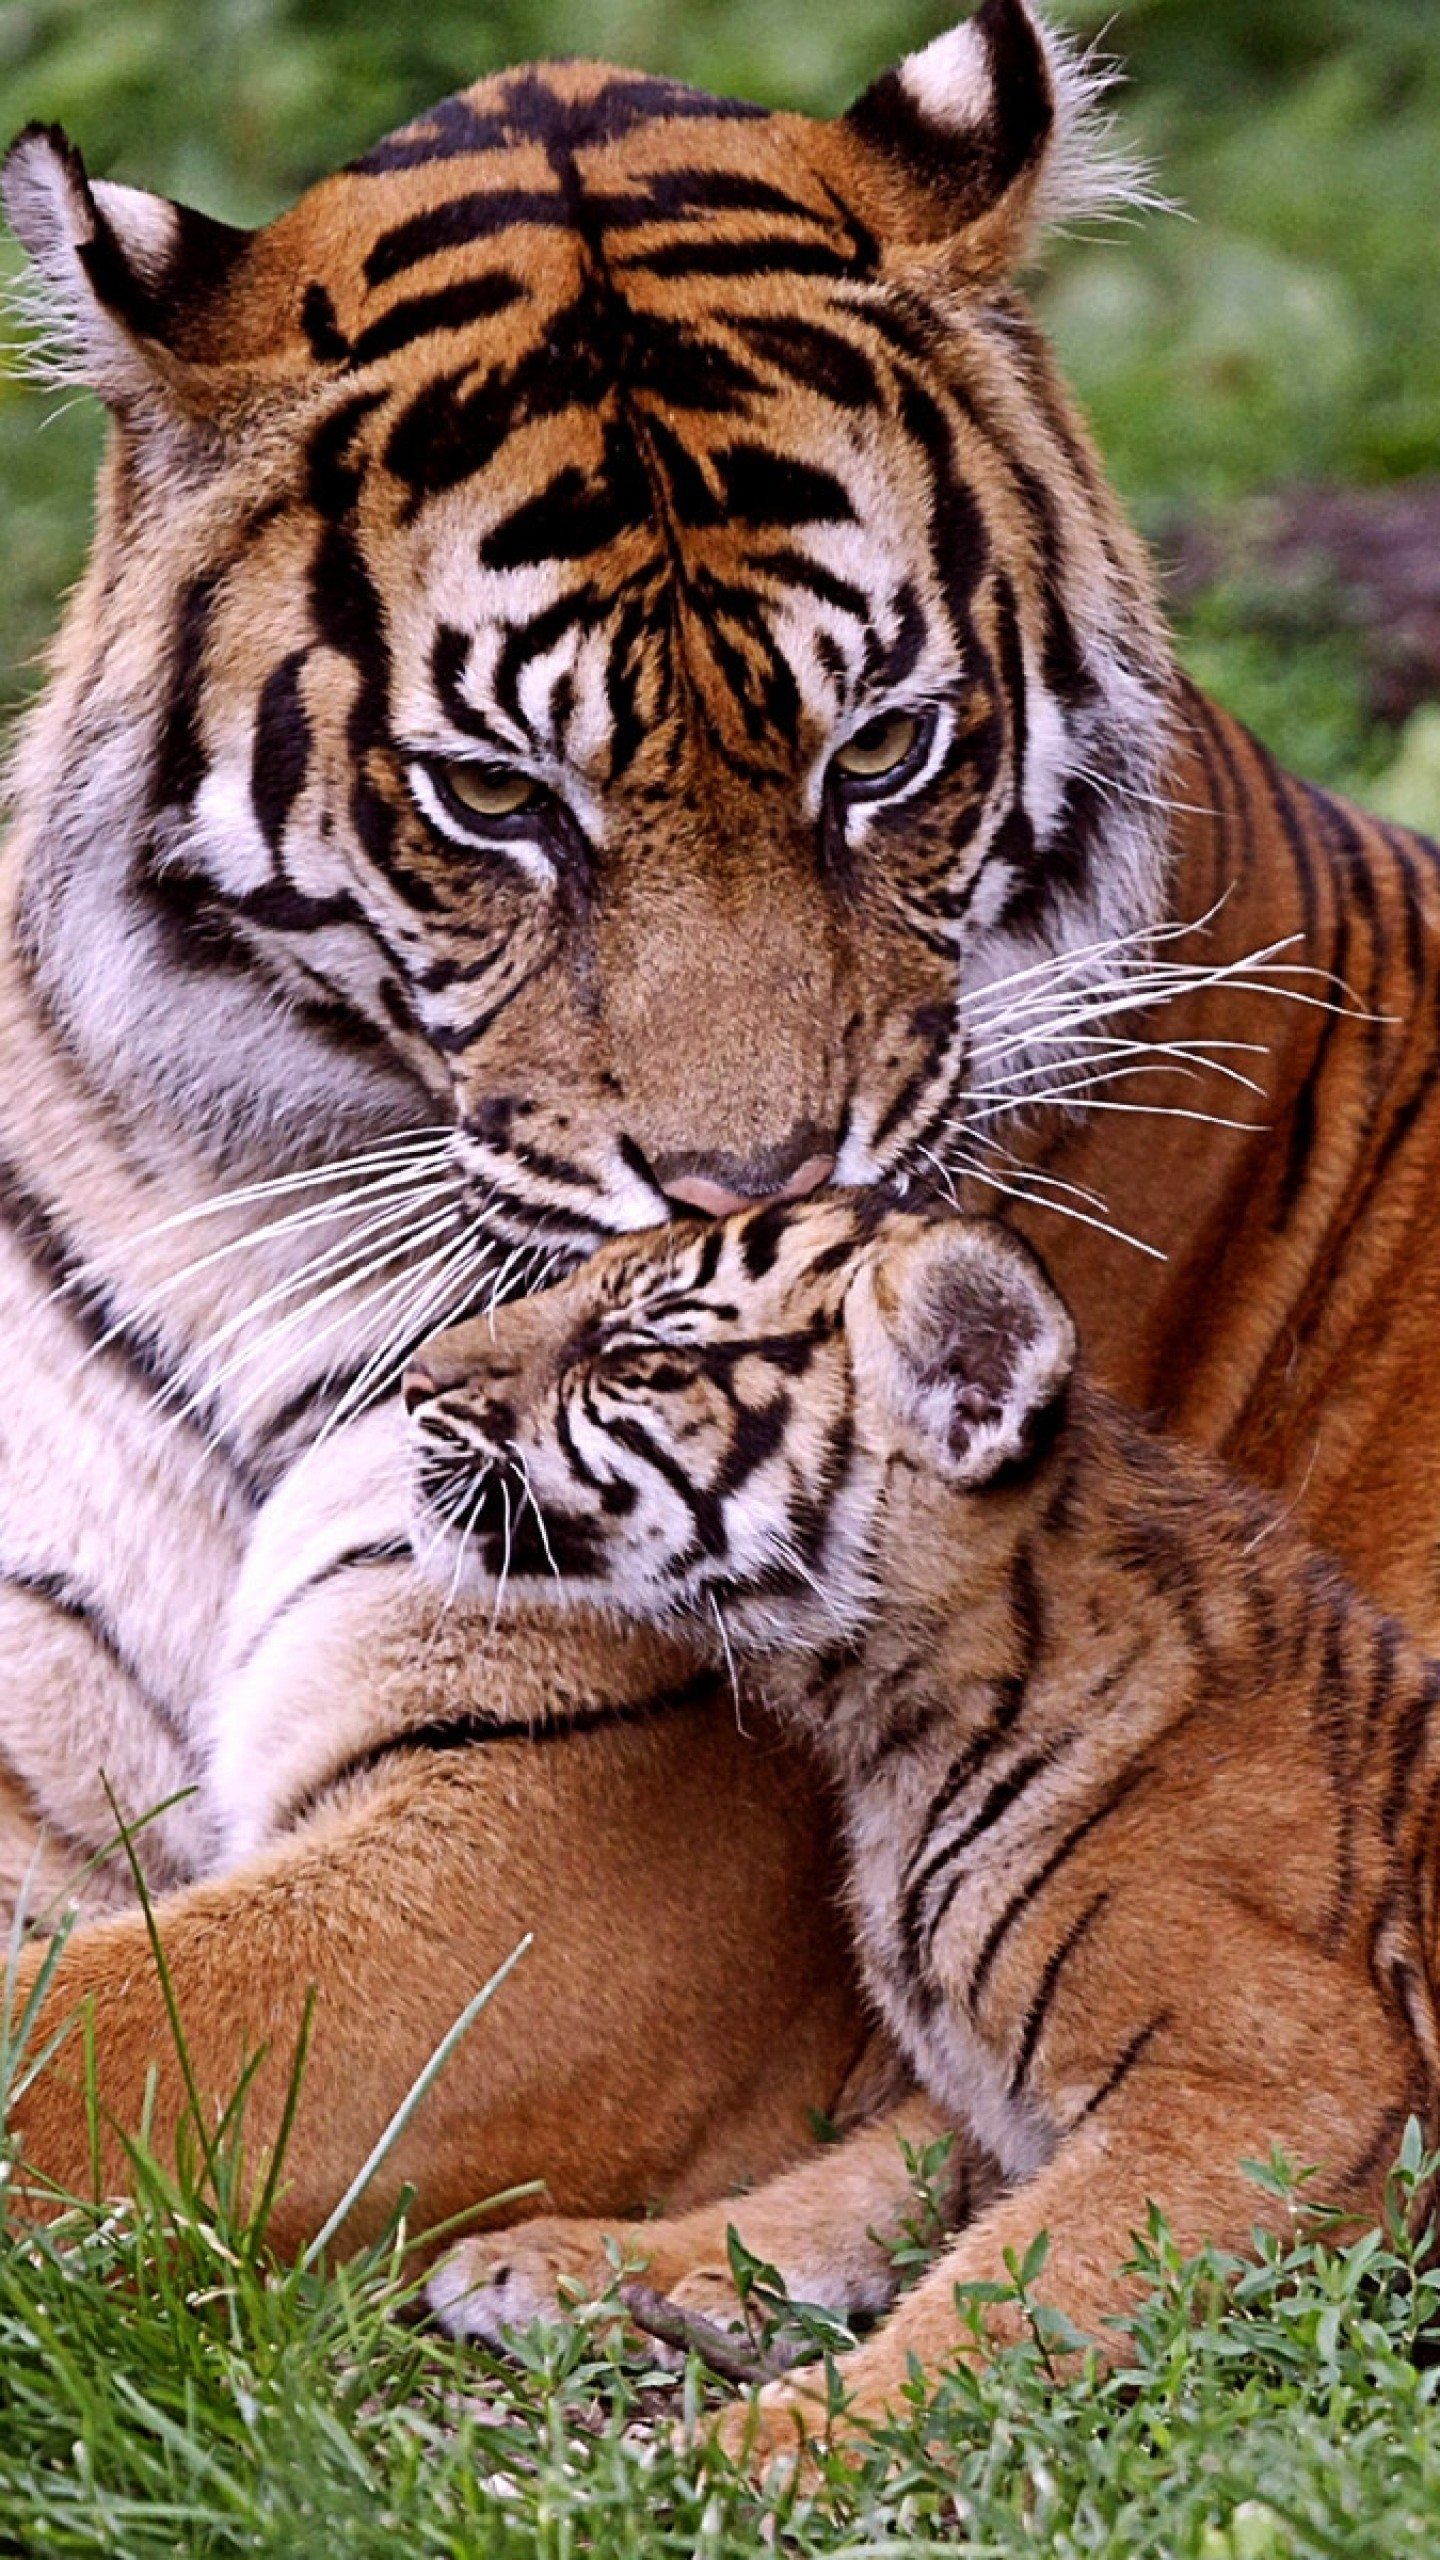 Baby tiger iphone wallpaper - photo#30